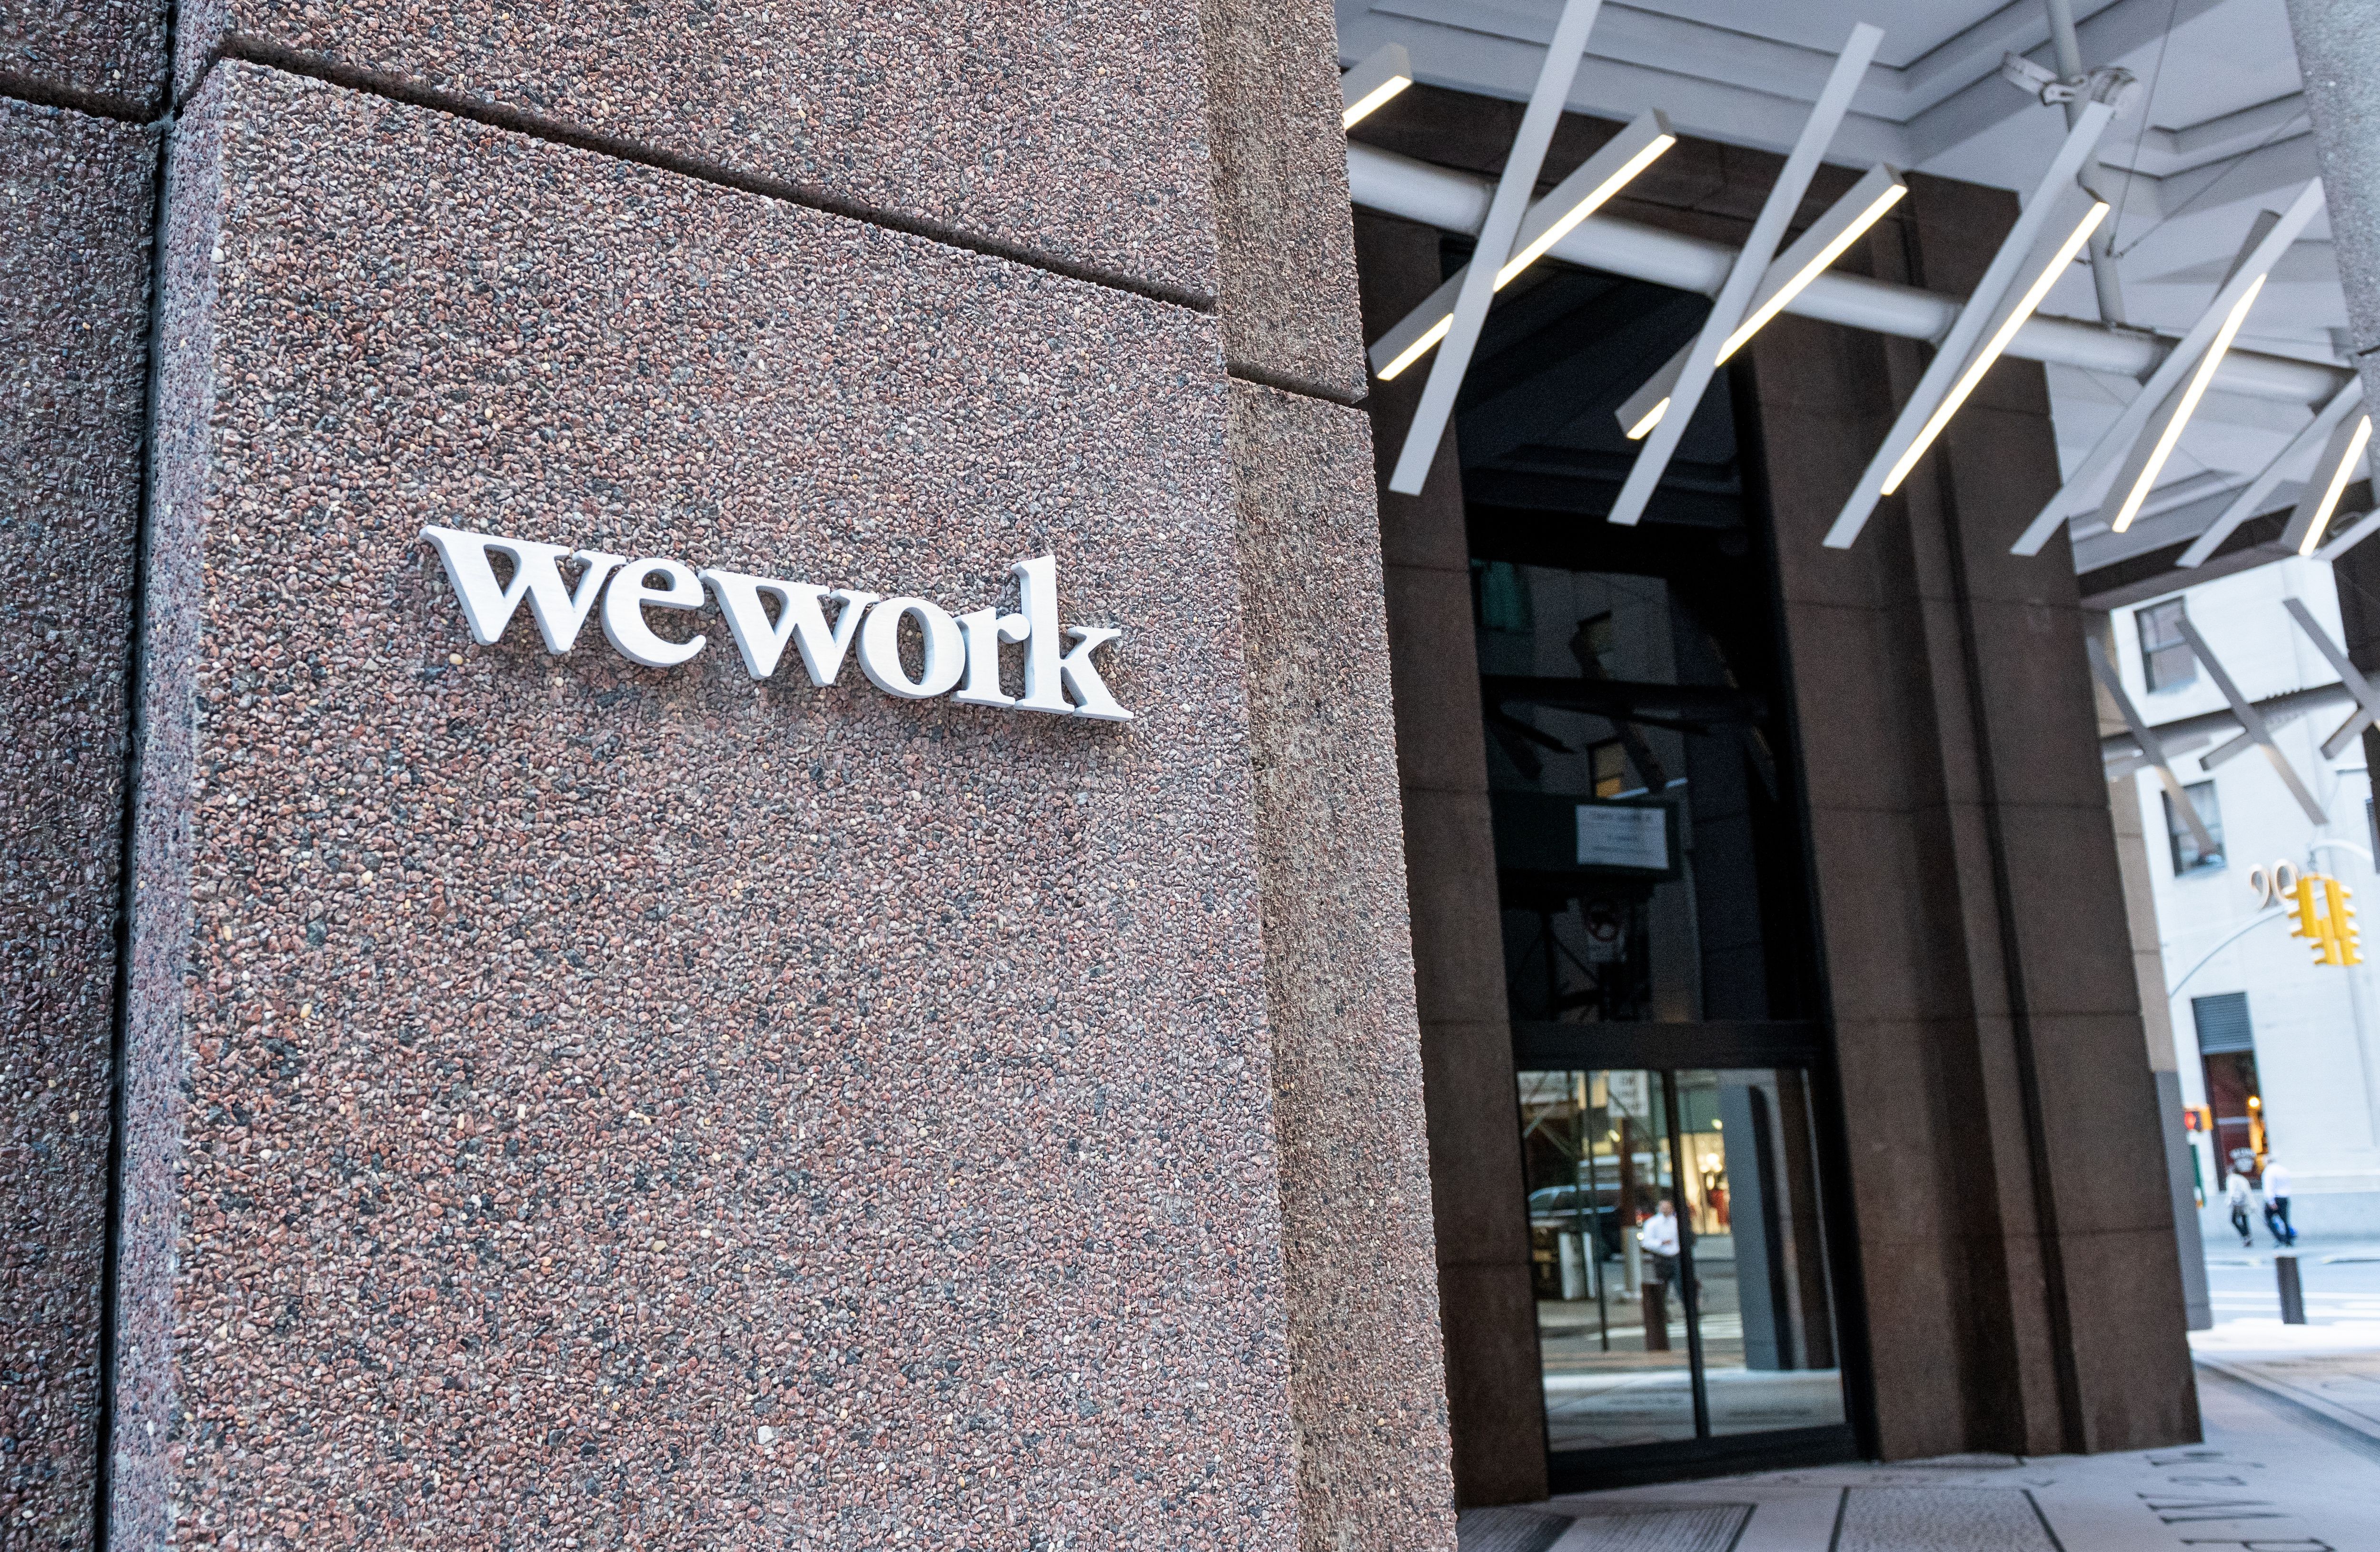 SoftBank agrees to $2 billion WeWork investment - Axios